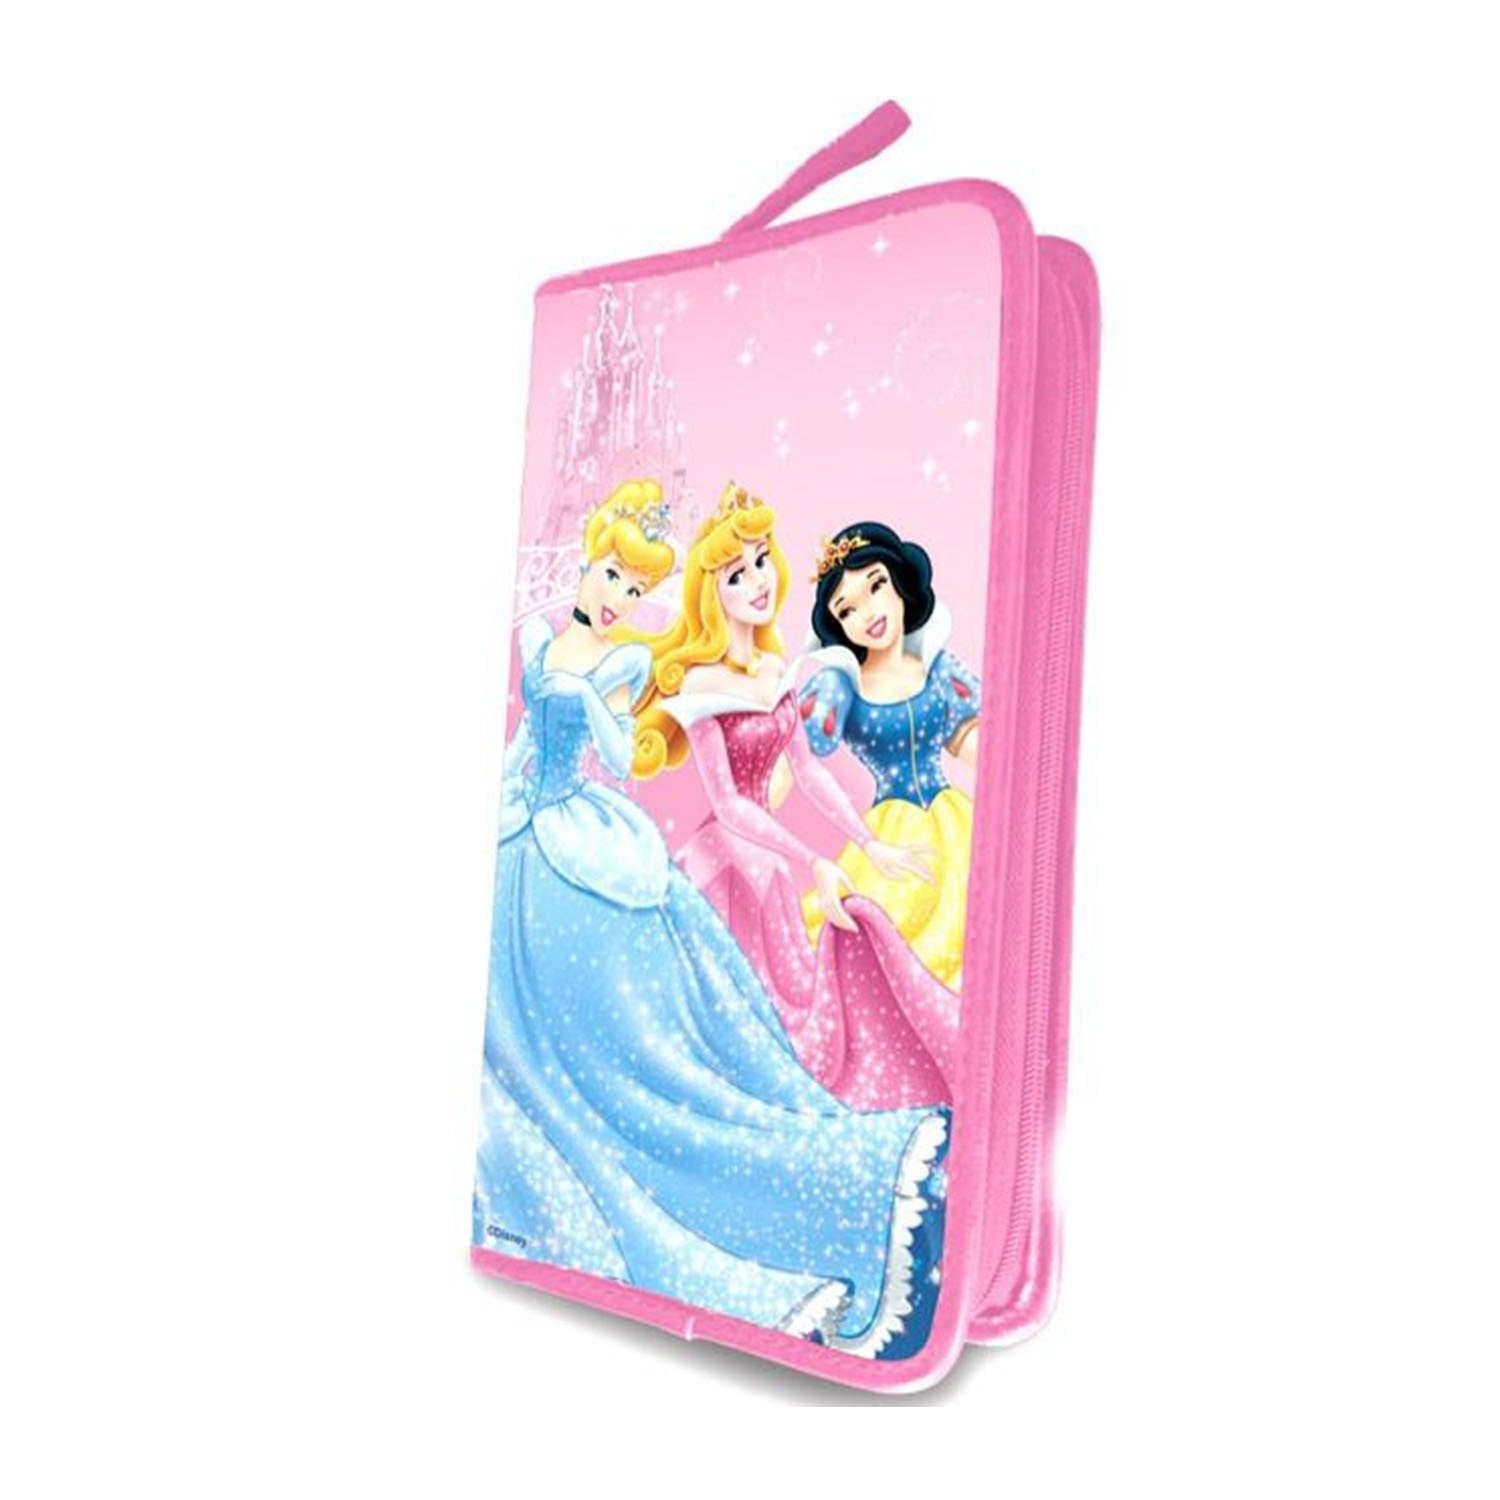 Disney Princess CD Folder 48